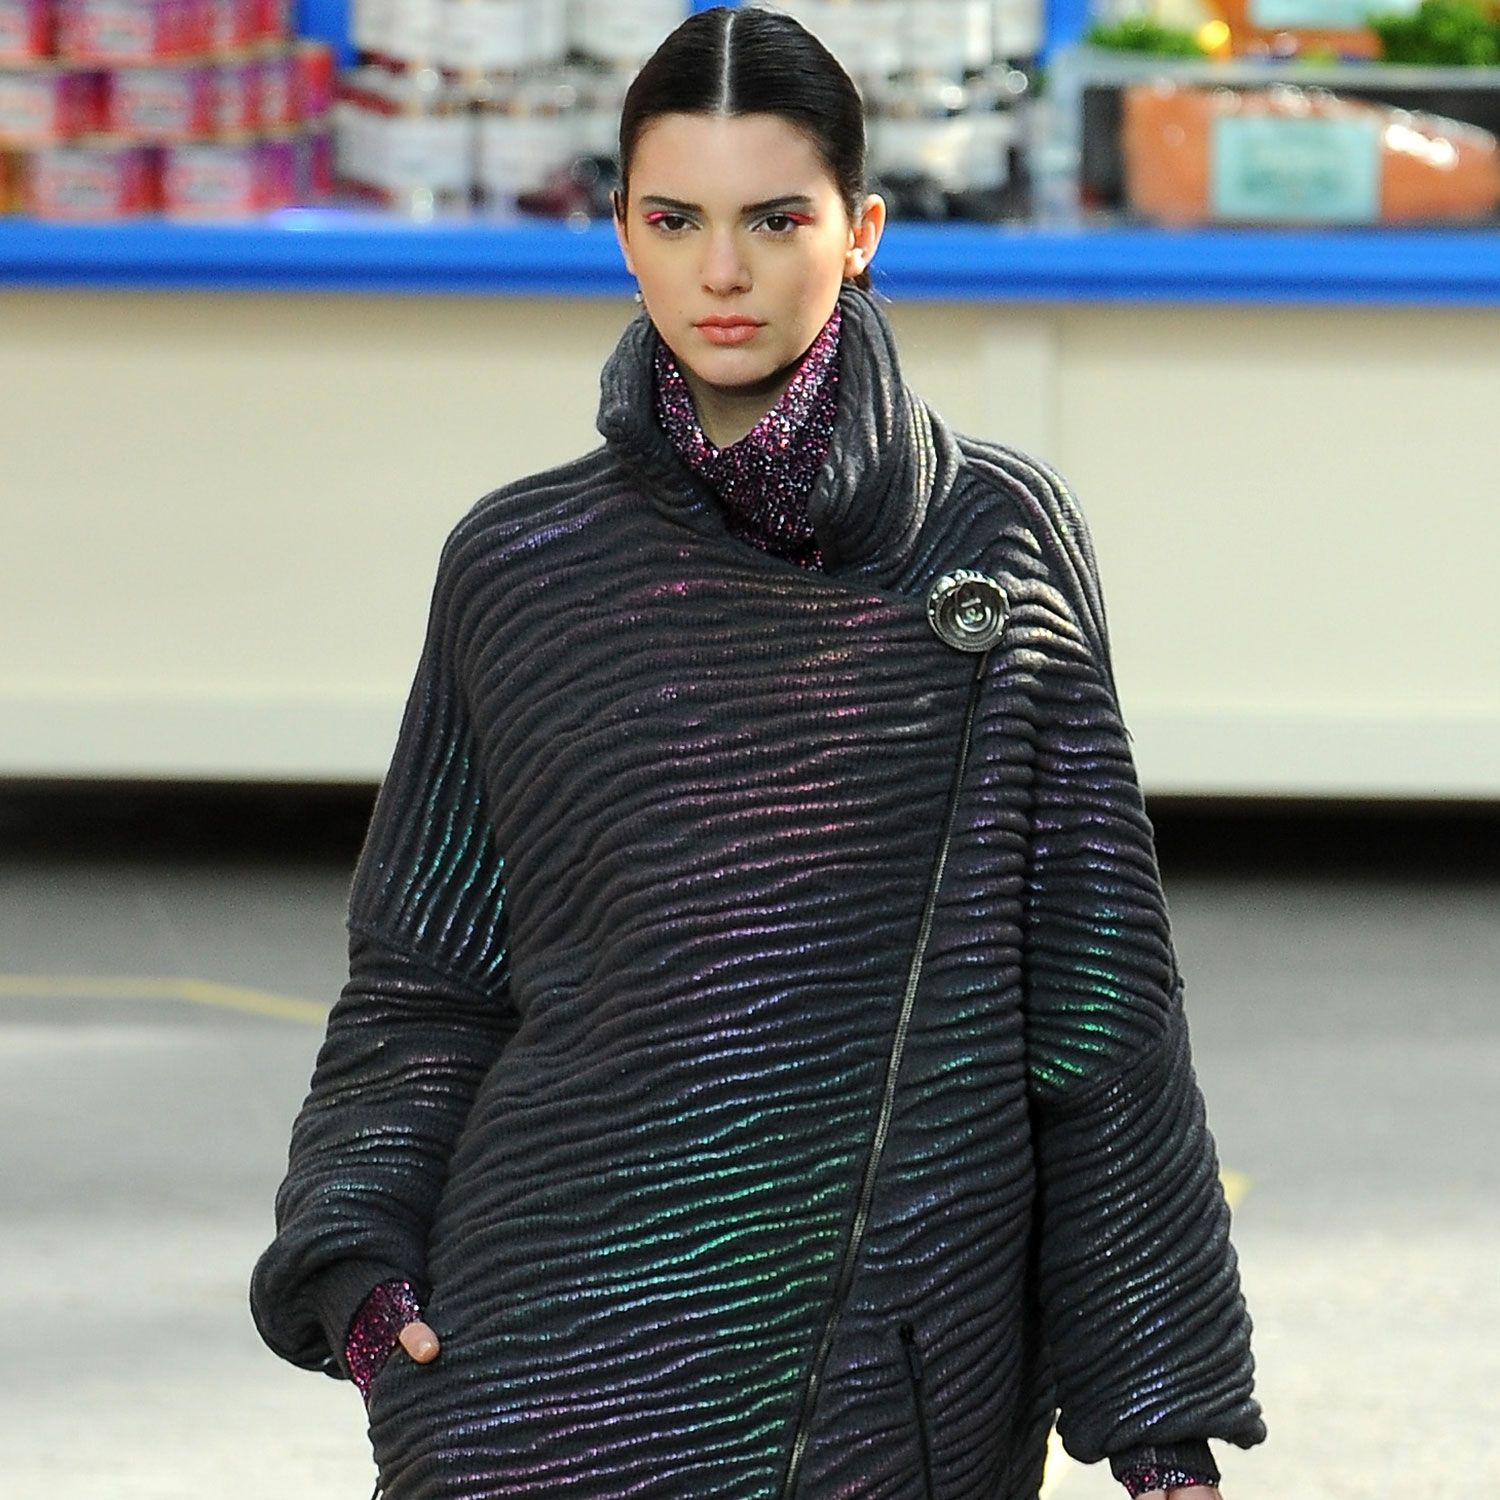 Kendall Jenner Didn't Use Her Famous Name to Get to Fashion Week